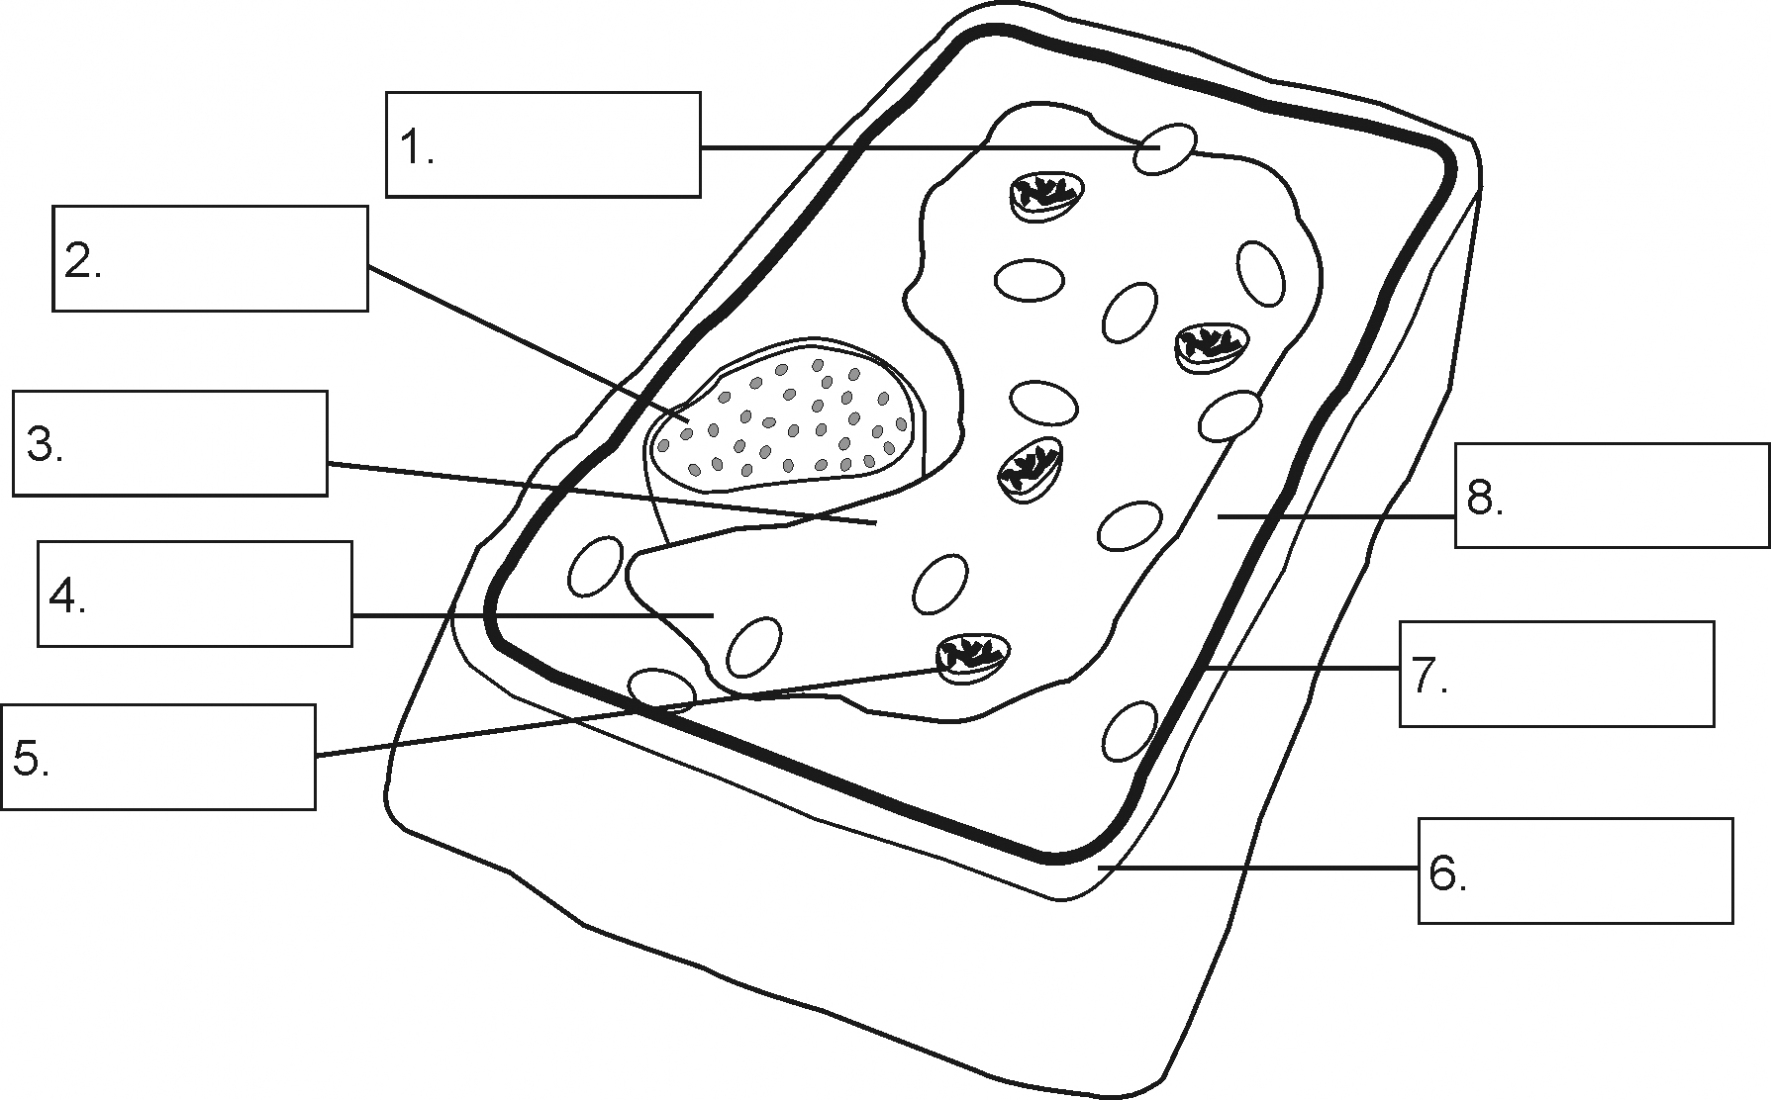 hight resolution of 1771x1100 plant cell diagram worksheet air american samoa simple plant cell drawing